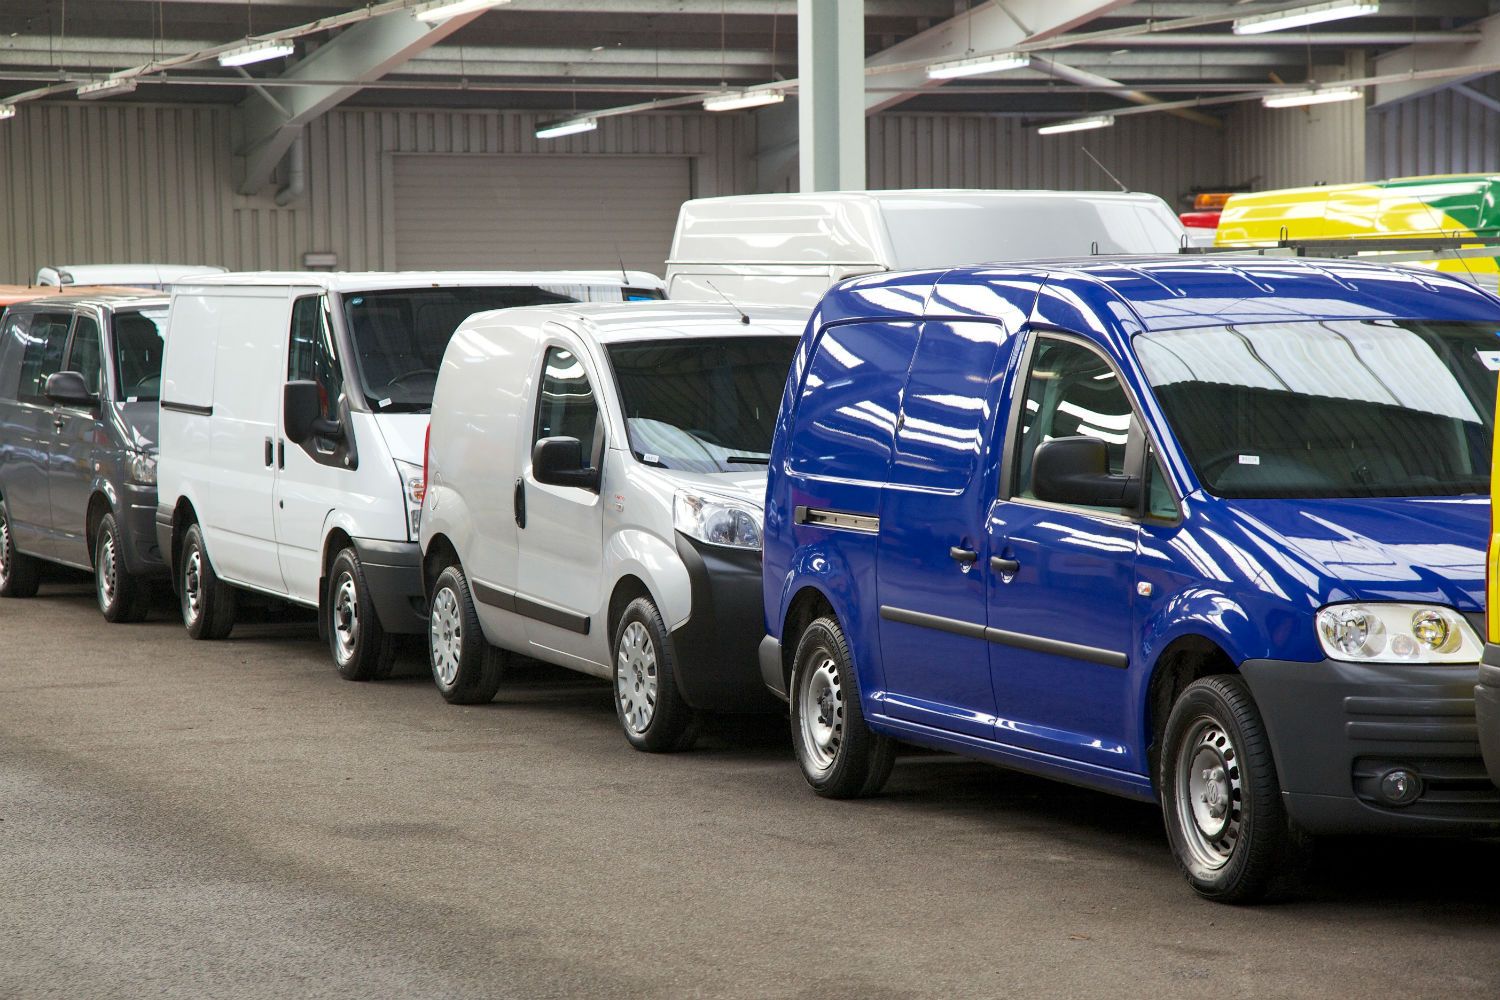 Row of vans to go through auction centre commercial vehicle lots